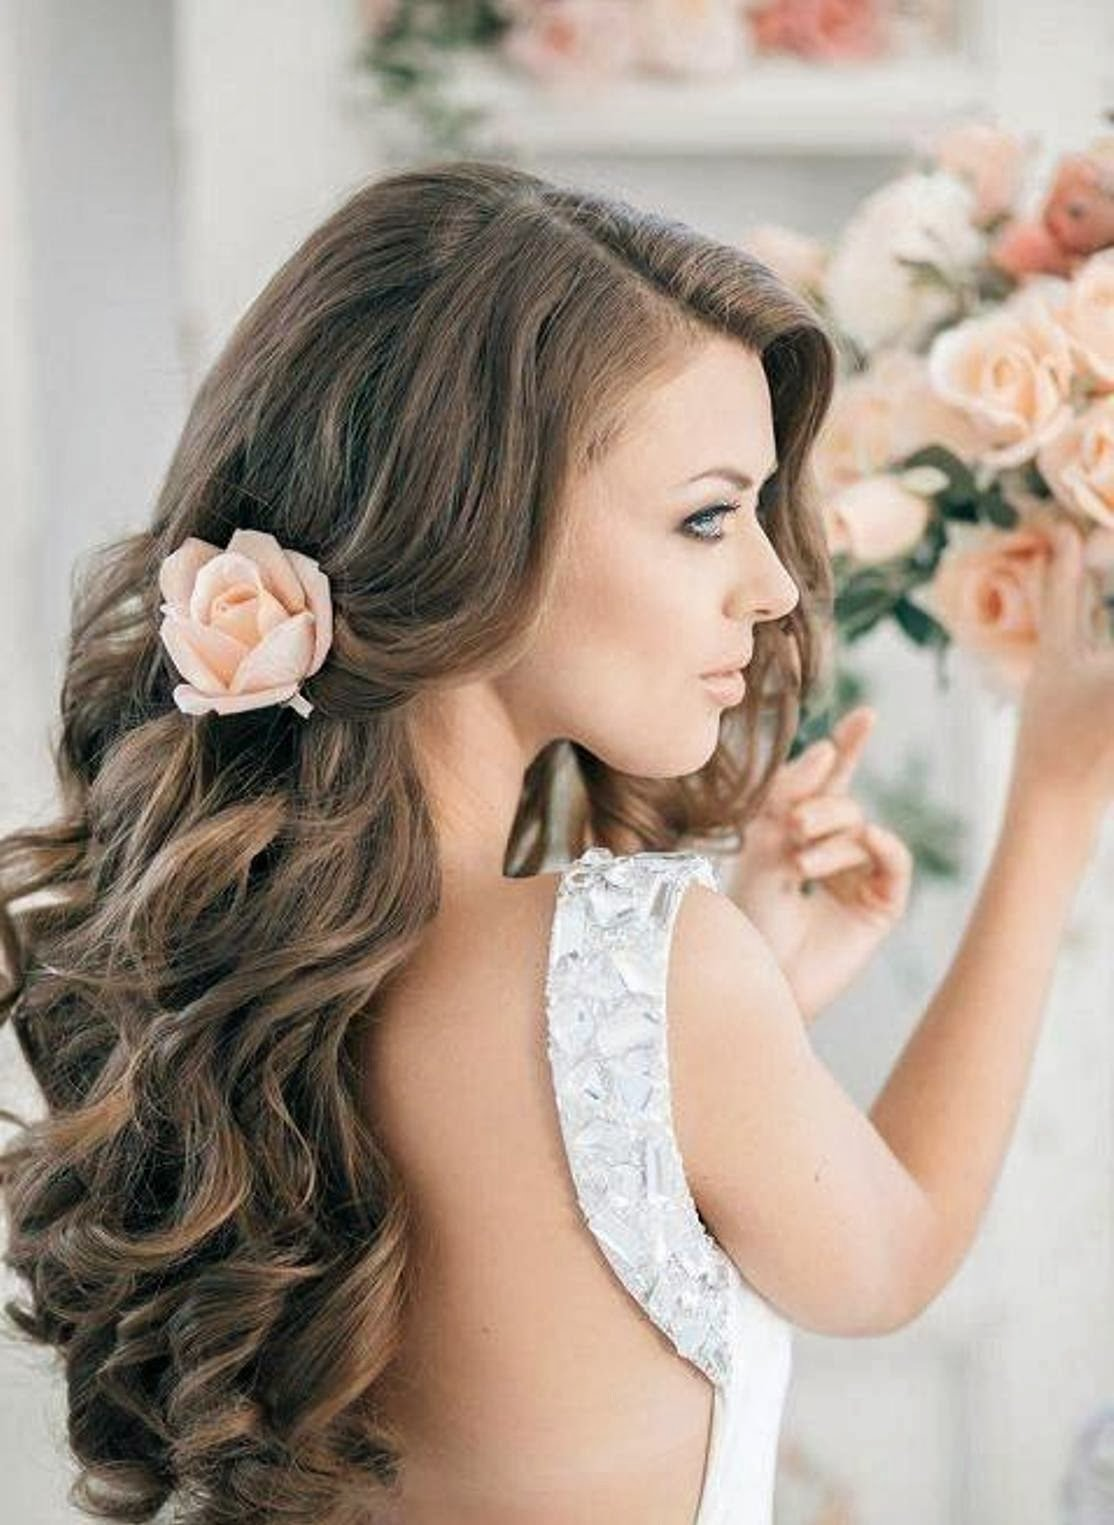 The Best Hairstyles For Long Hair Female Hair Fashion Style Color Styles Cuts Pictures